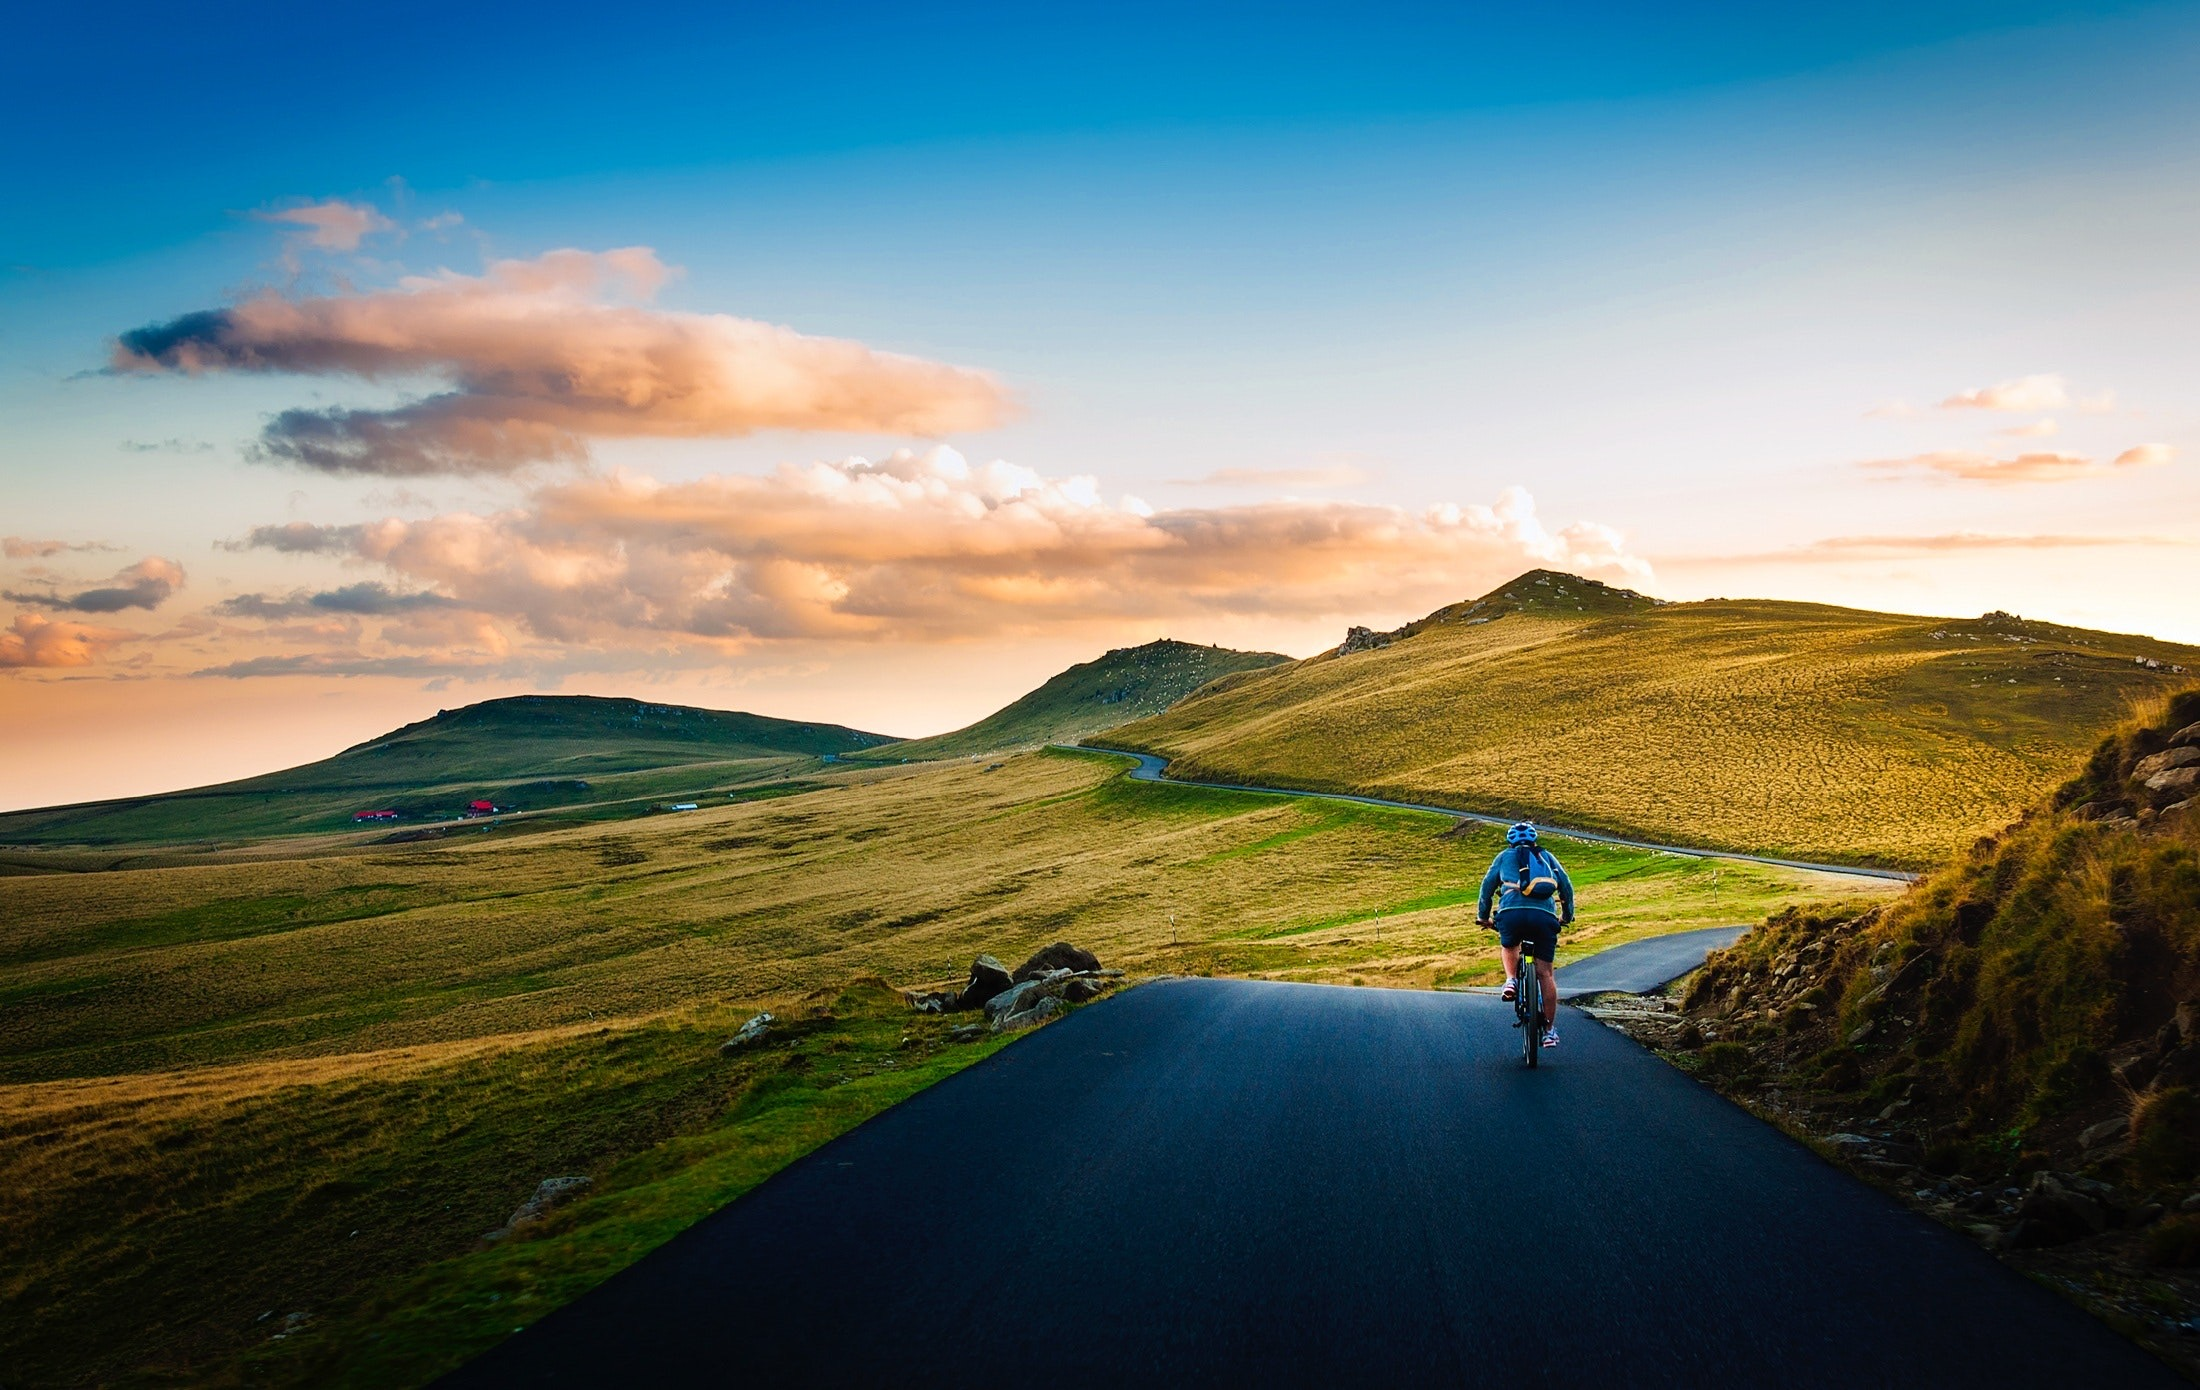 Busy Traveling? How to Exercise While Traveling